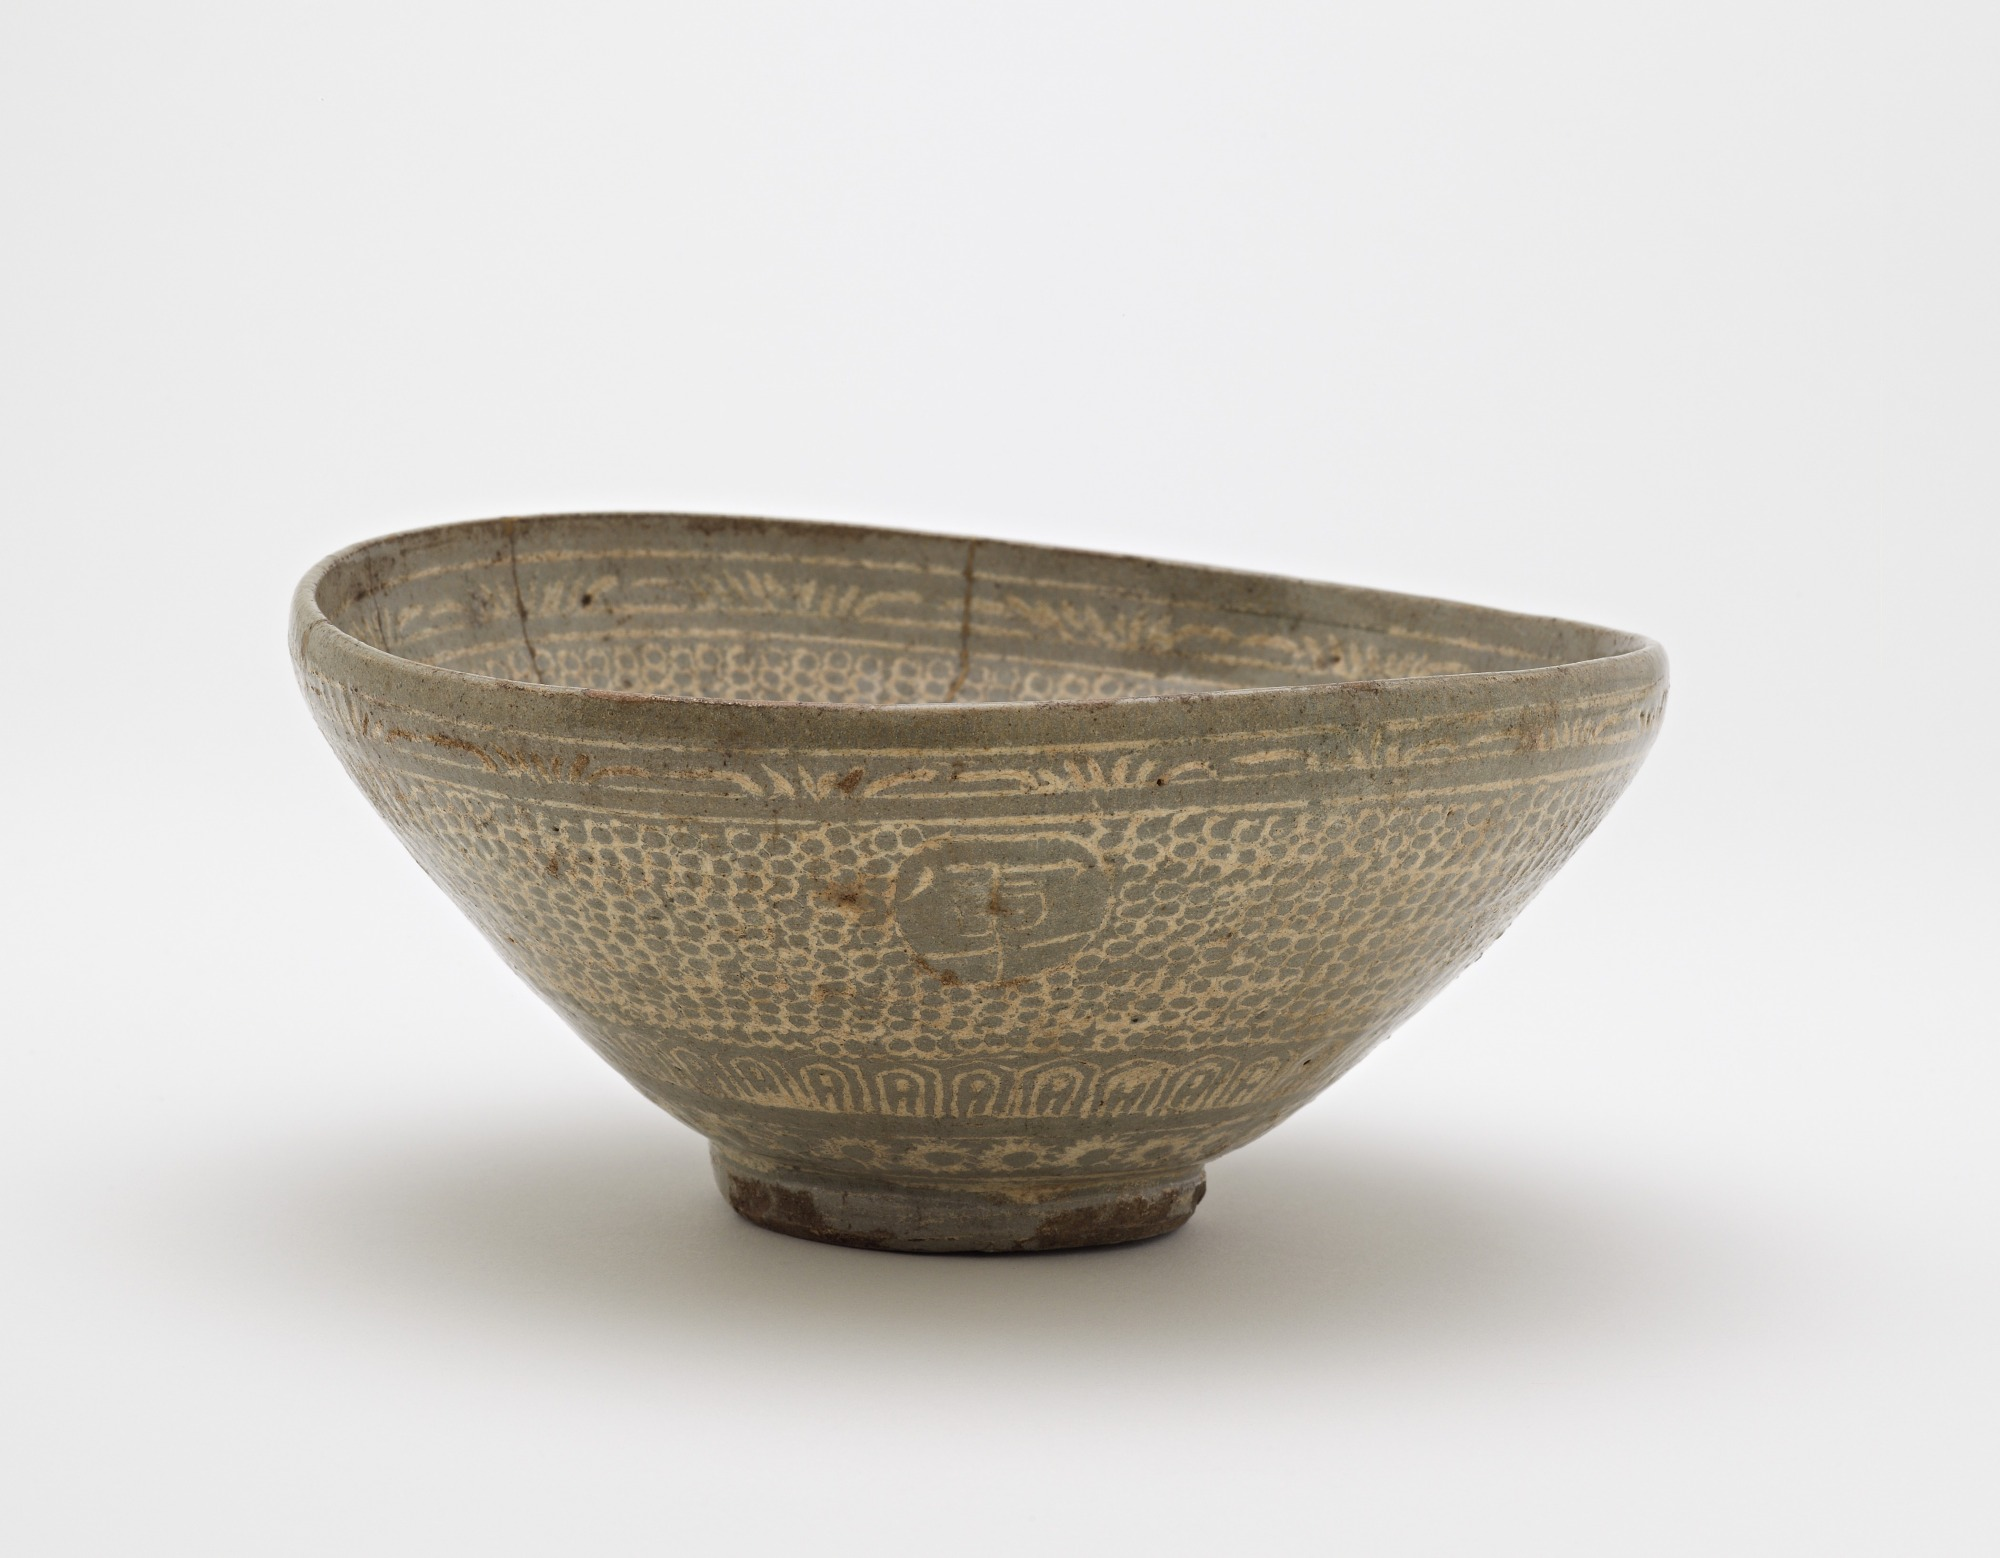 profile: Bowl with inlaid inscription